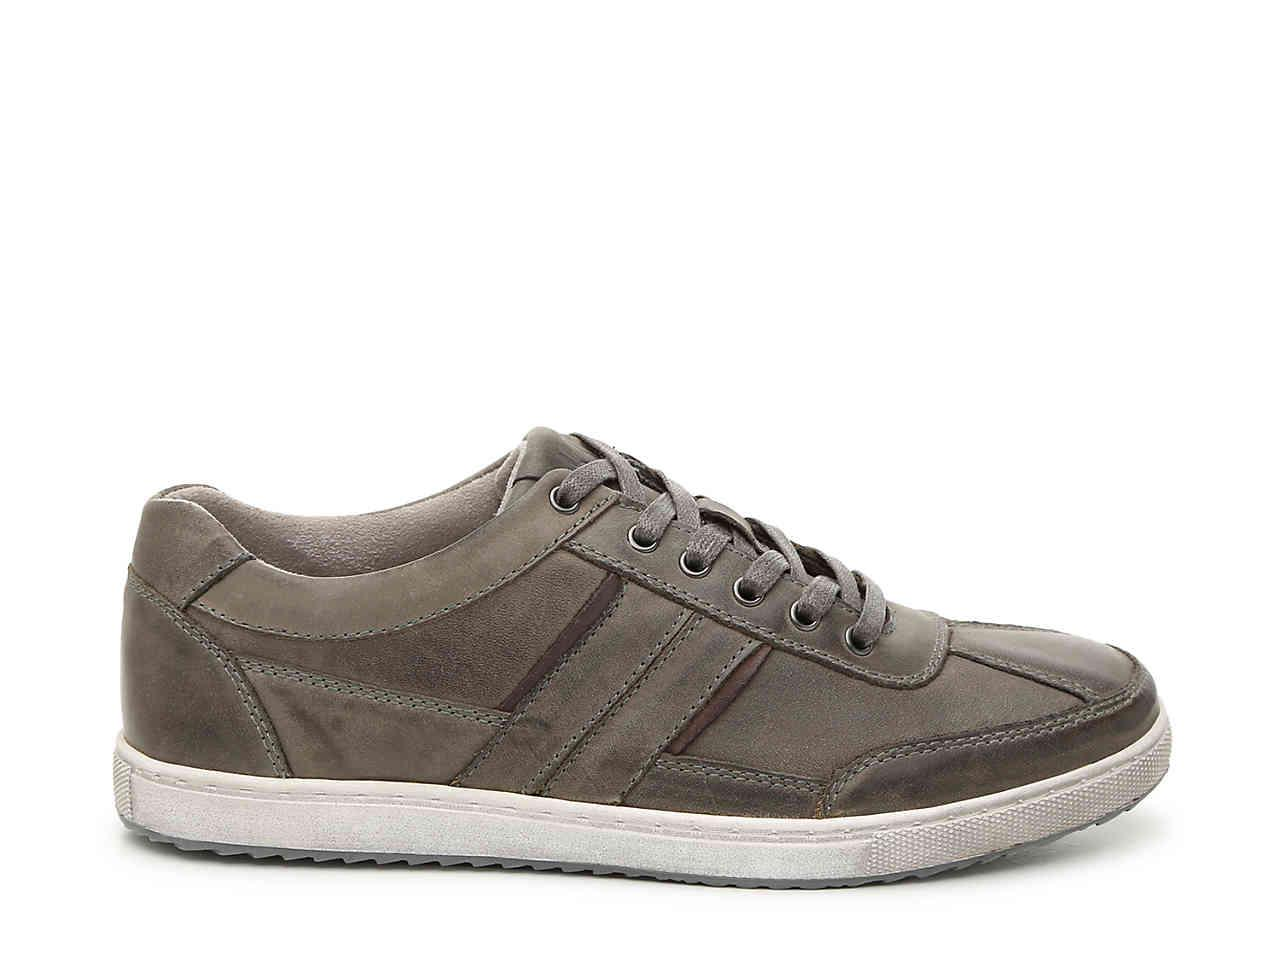 Kenneth Cole Reaction Leather Sprinter